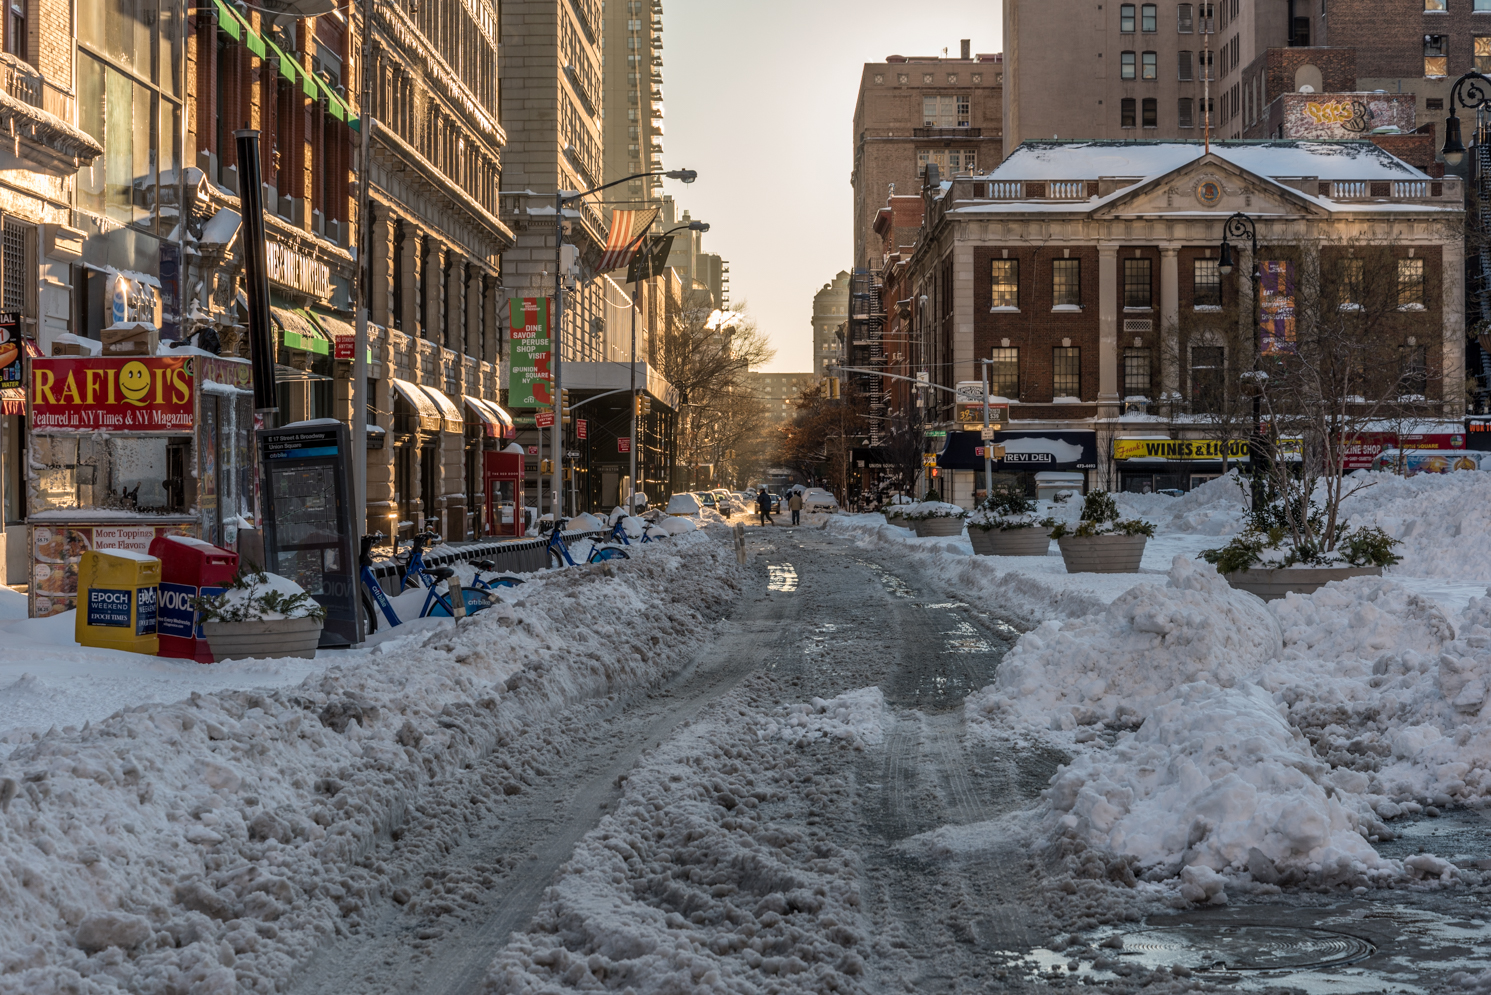 ROCK MAMA NYC LIFESTYLE BLOG - THE MORNING AFTER THE FIRST SNOWSTORM OF 2016 NYC